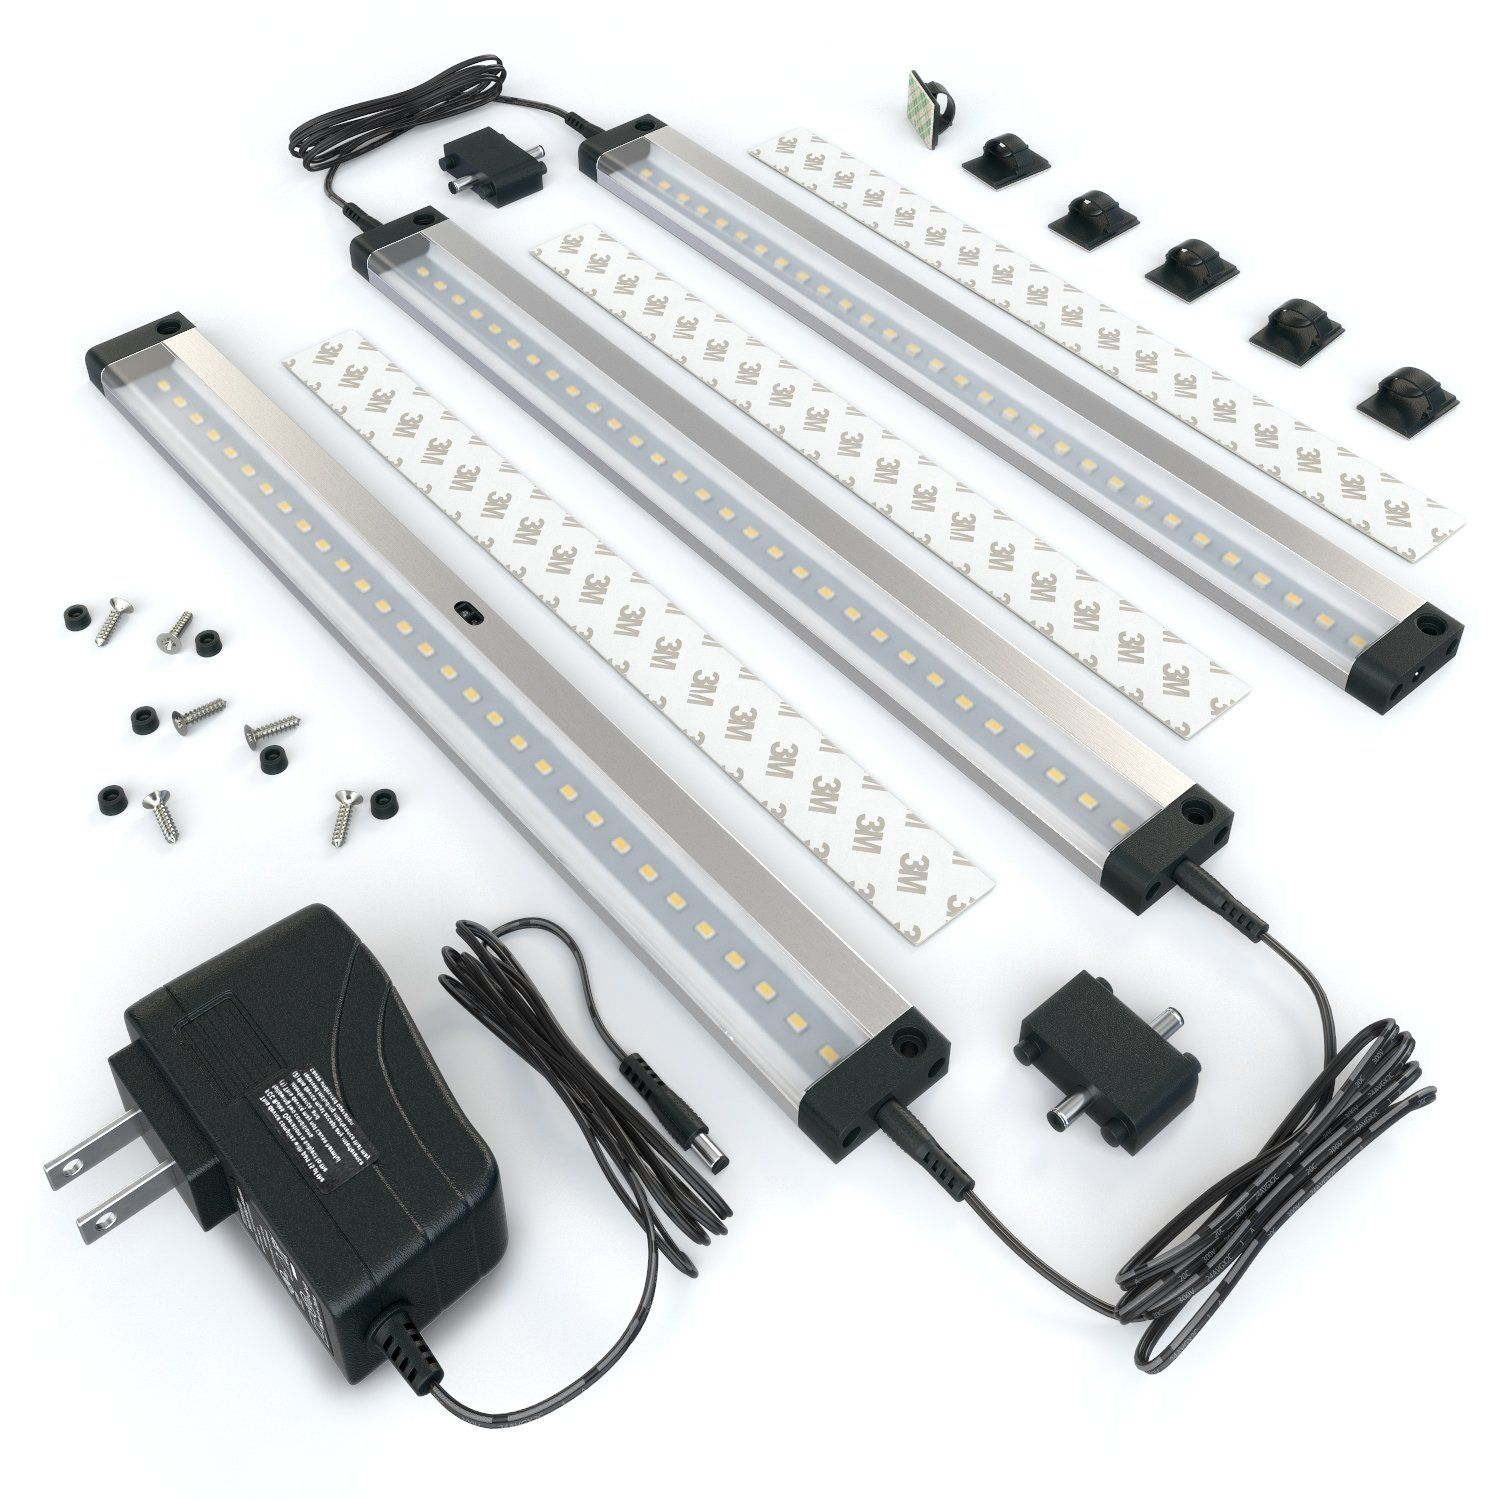 New] EShine 3 12 Inch Panels LED Dimmable Under Cabinet Lighting Kit